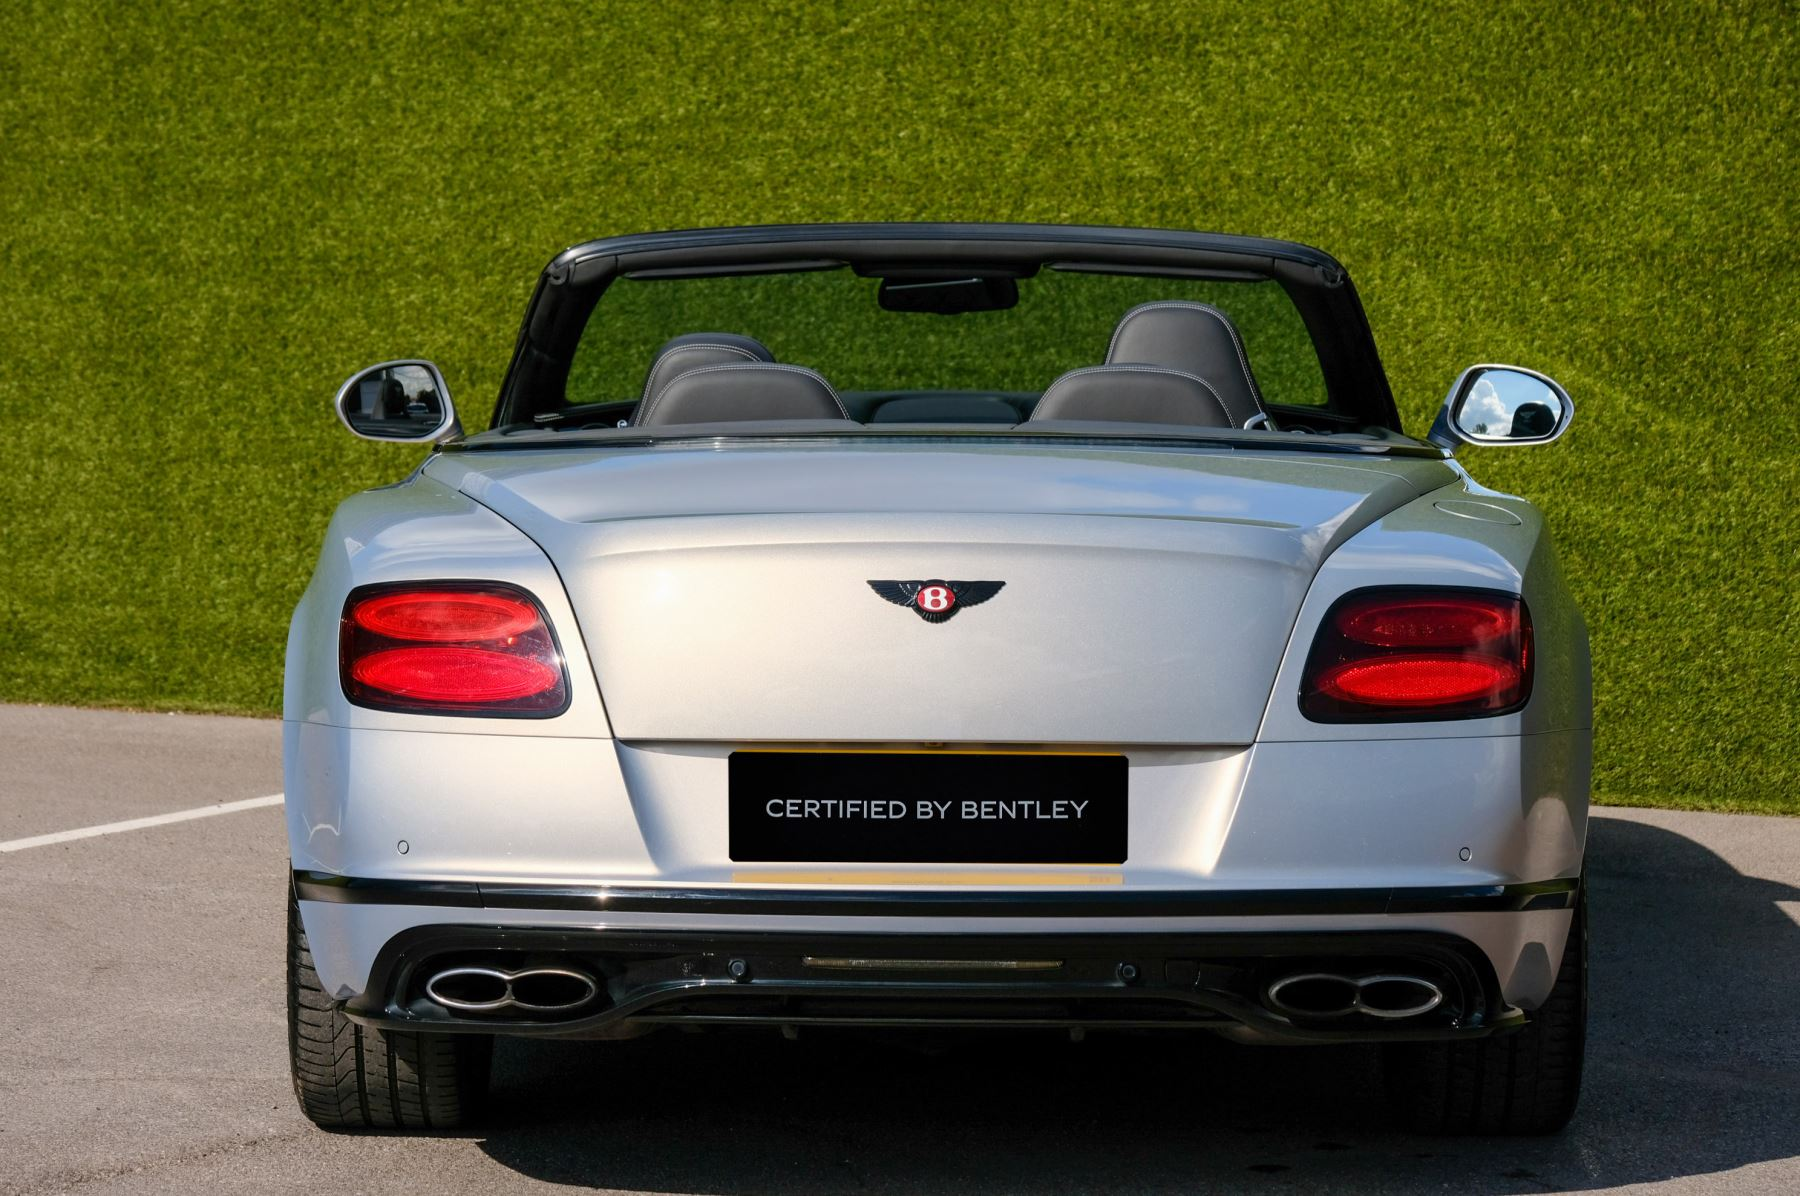 Bentley Continental GTC 4.0 V8 S Mulliner Driving Spec - Ventilated Front Seats with Massage Function image 4